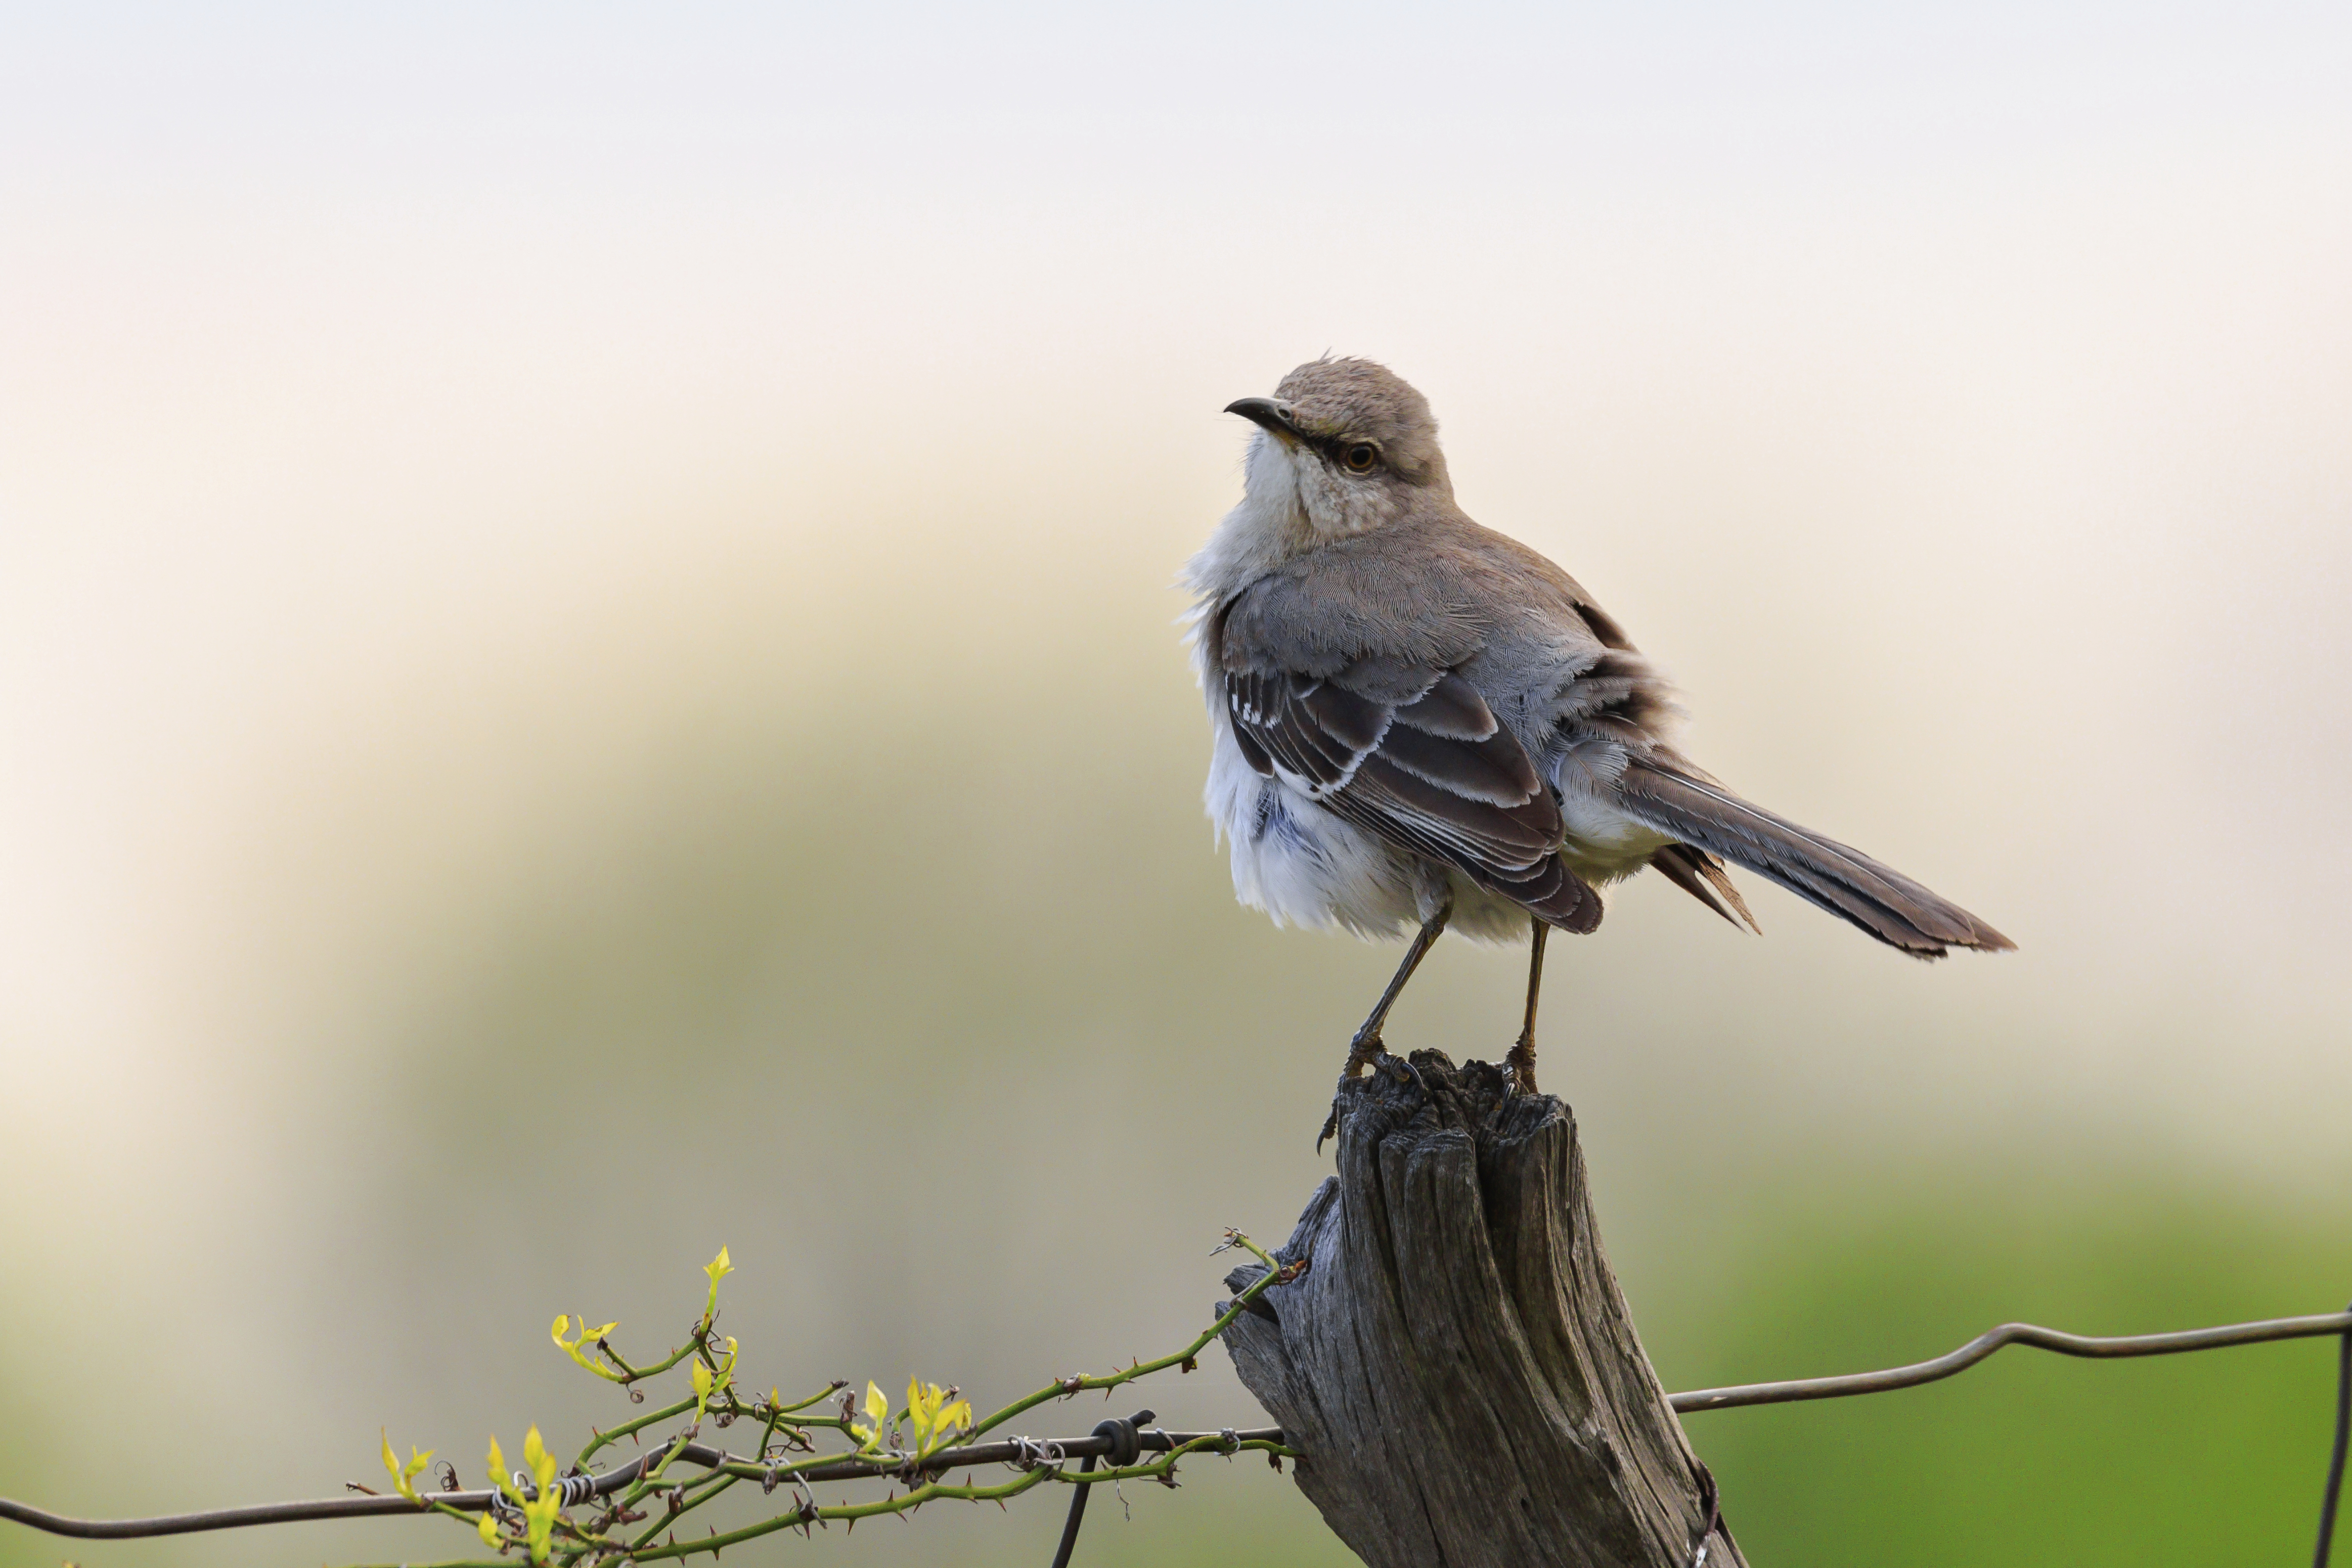 State birds tennessee secretary of state according to the nashville banner of april 16 1933 the mockingbird mimus polyglottos was selected on april 11 1933 as the state bird of tennessee in an buycottarizona Images